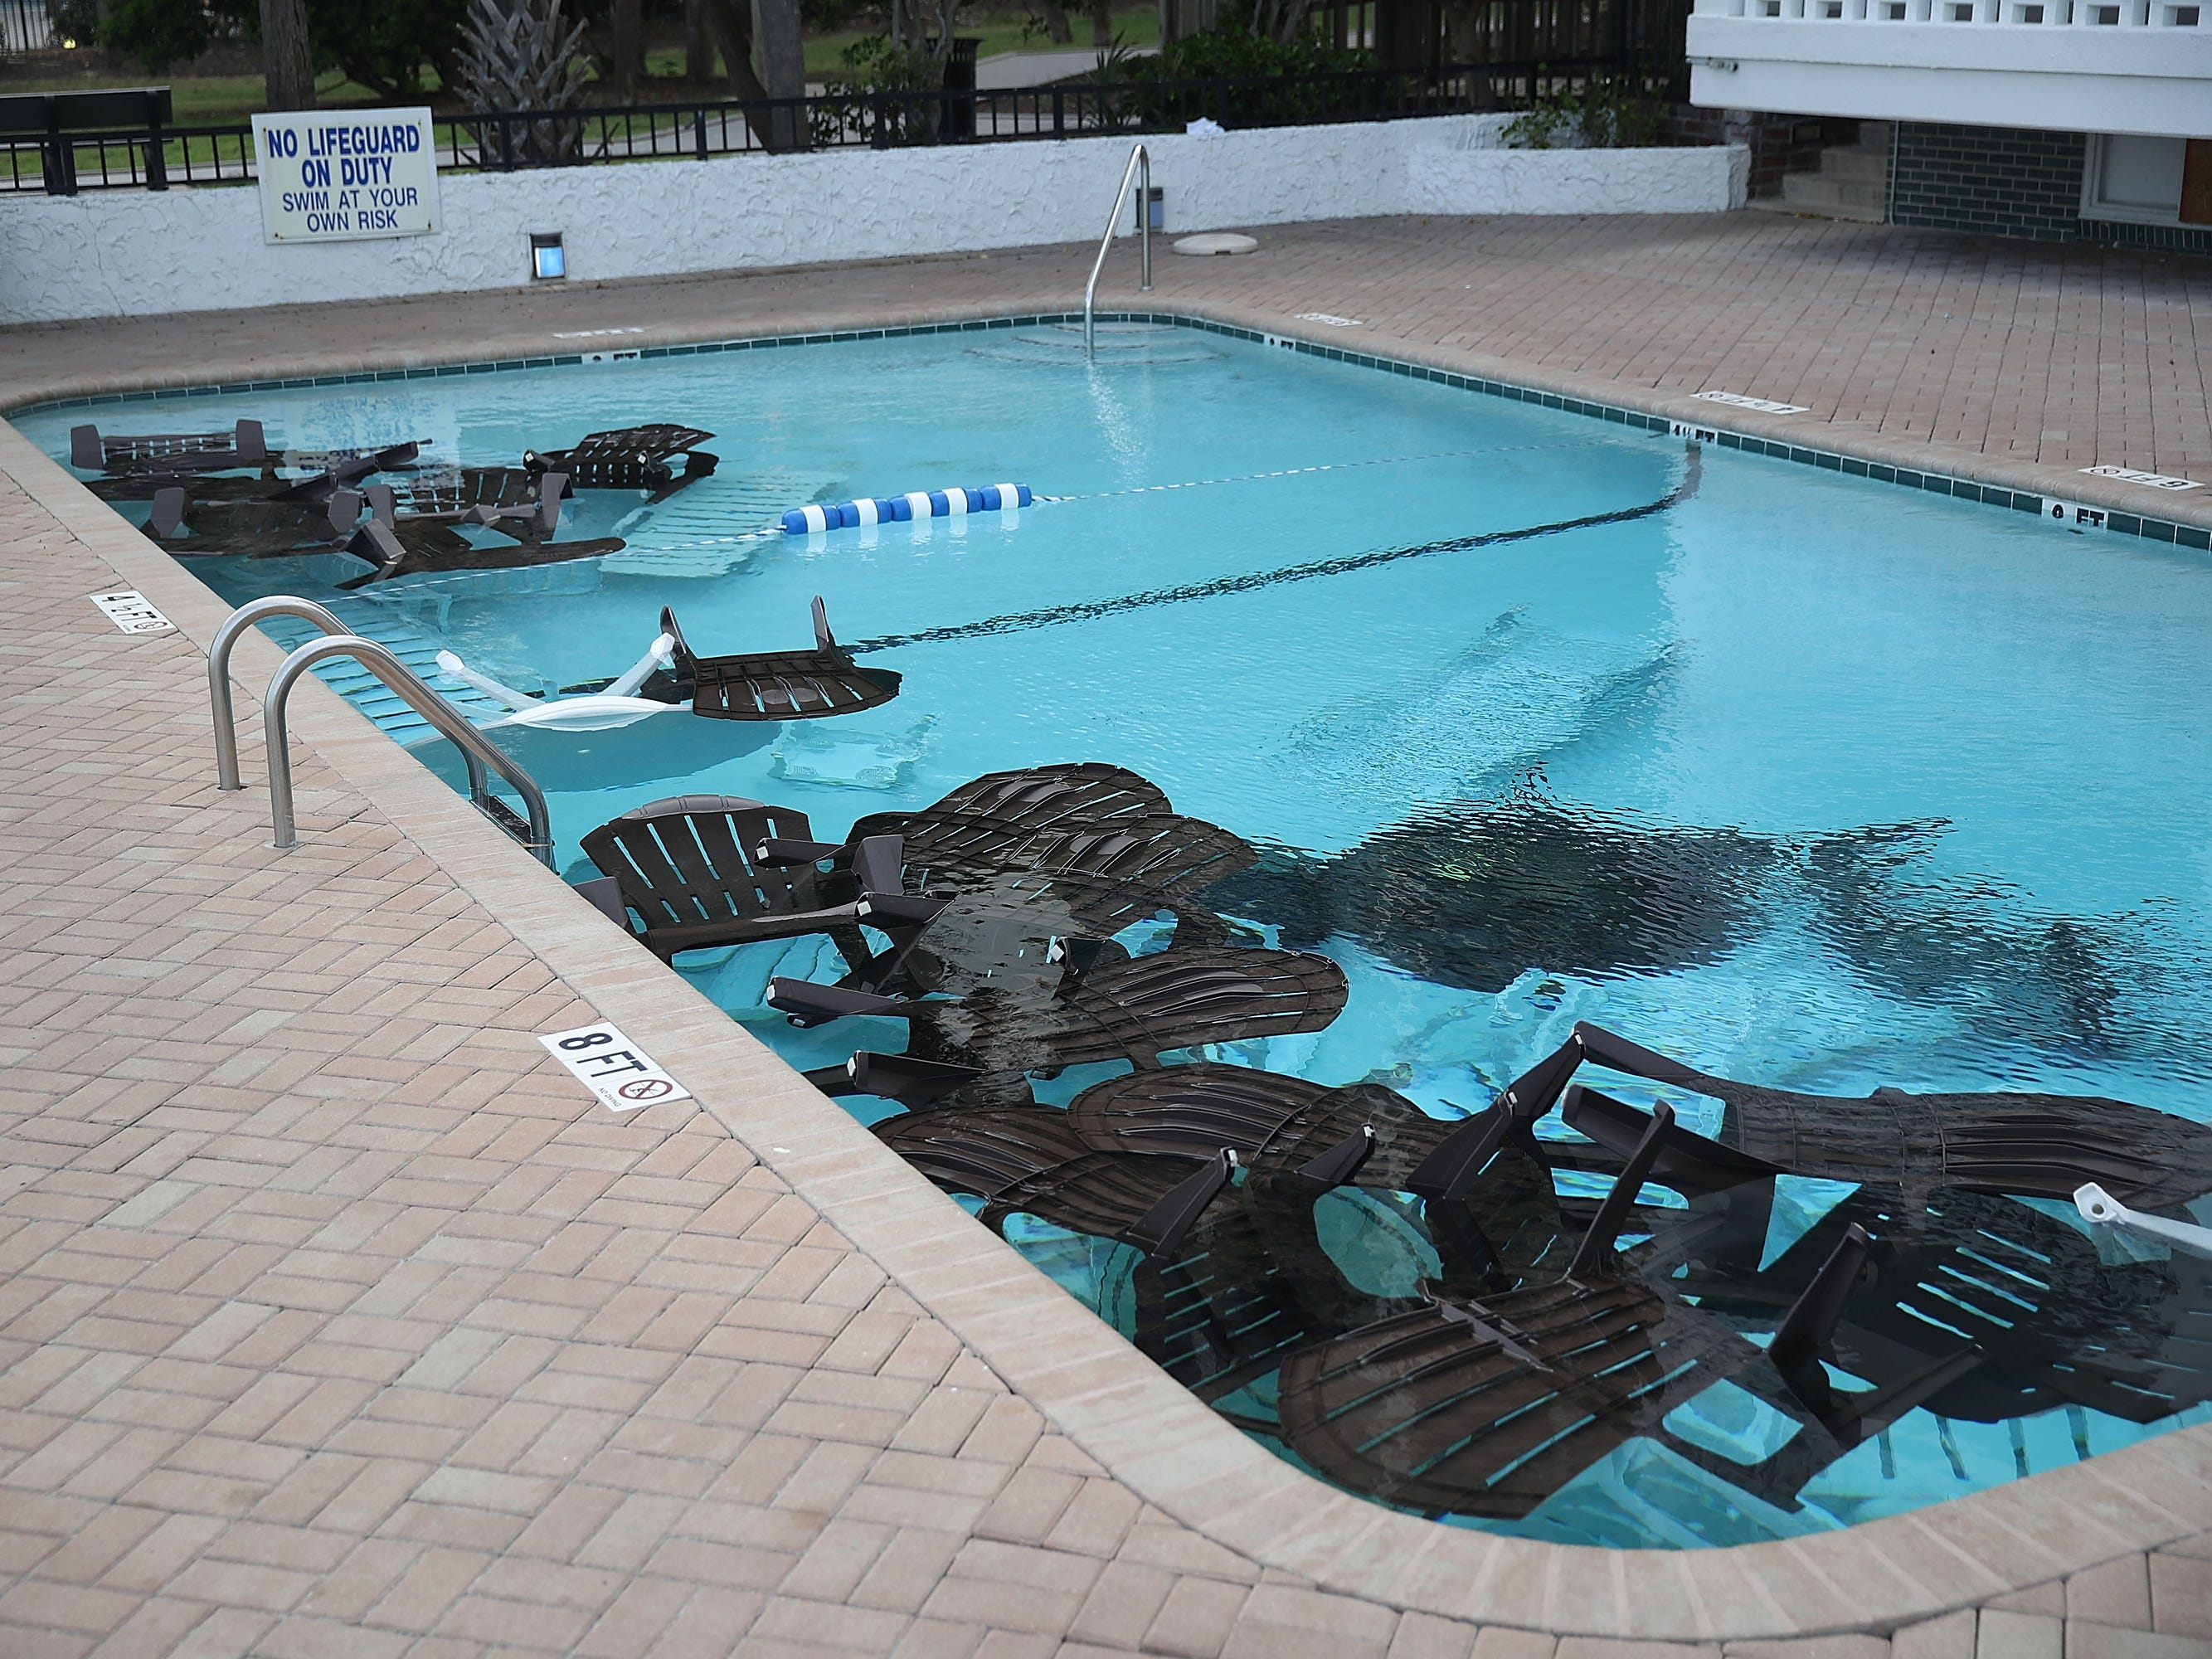 Patio furniture is seen in the pool in an effort to keep it from flying away as people prepare ahead of the arrival of Hurricane Florence on Sept. 12, 2018 in Myrtle Beach, S.C.